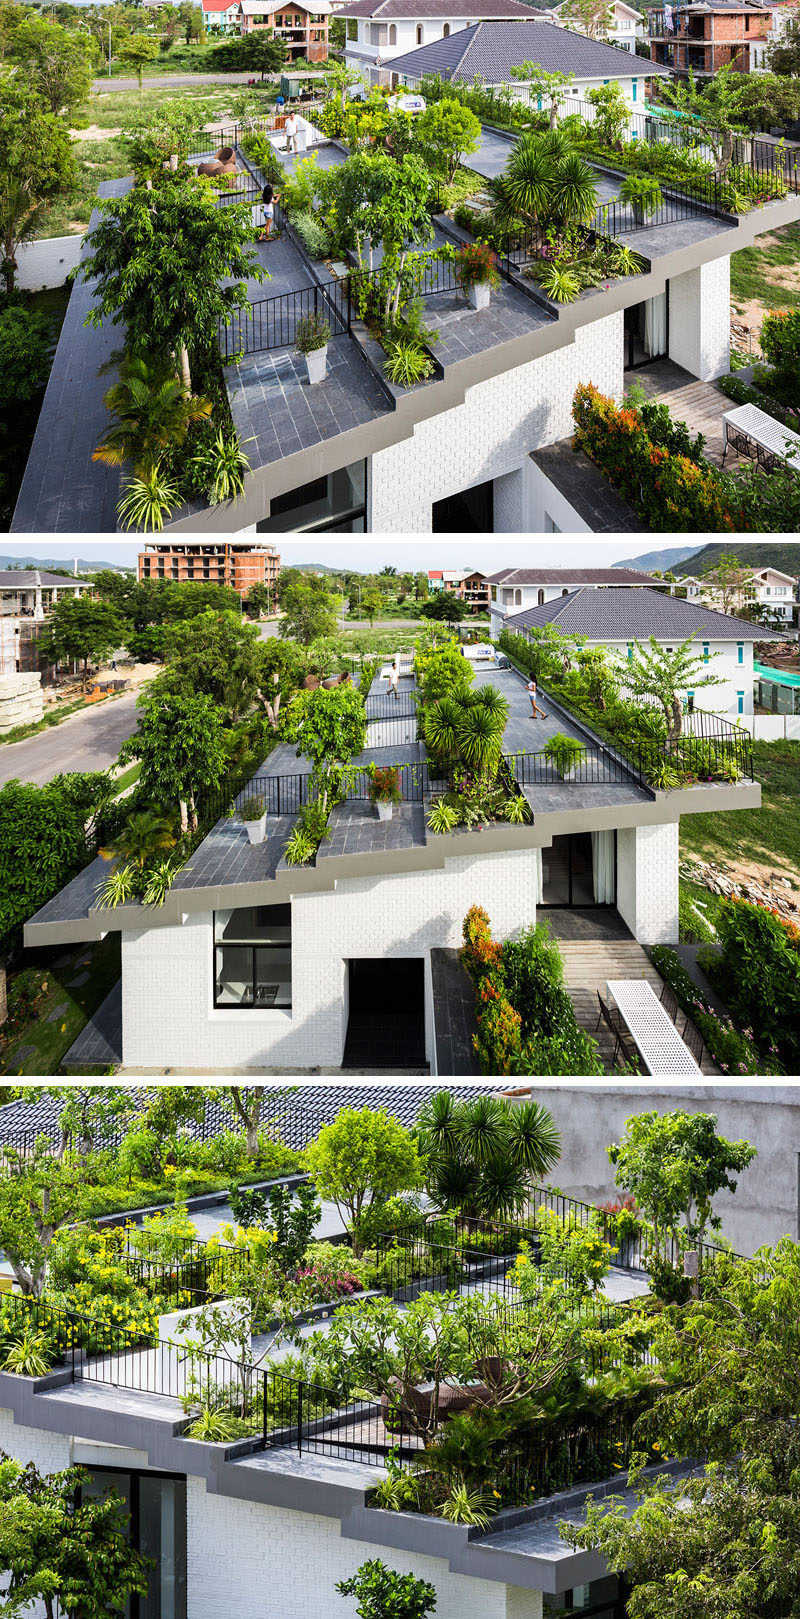 The roof of this family home has been turned into a rooftop garden with multiple levels to provide ample space to entertain and relax.